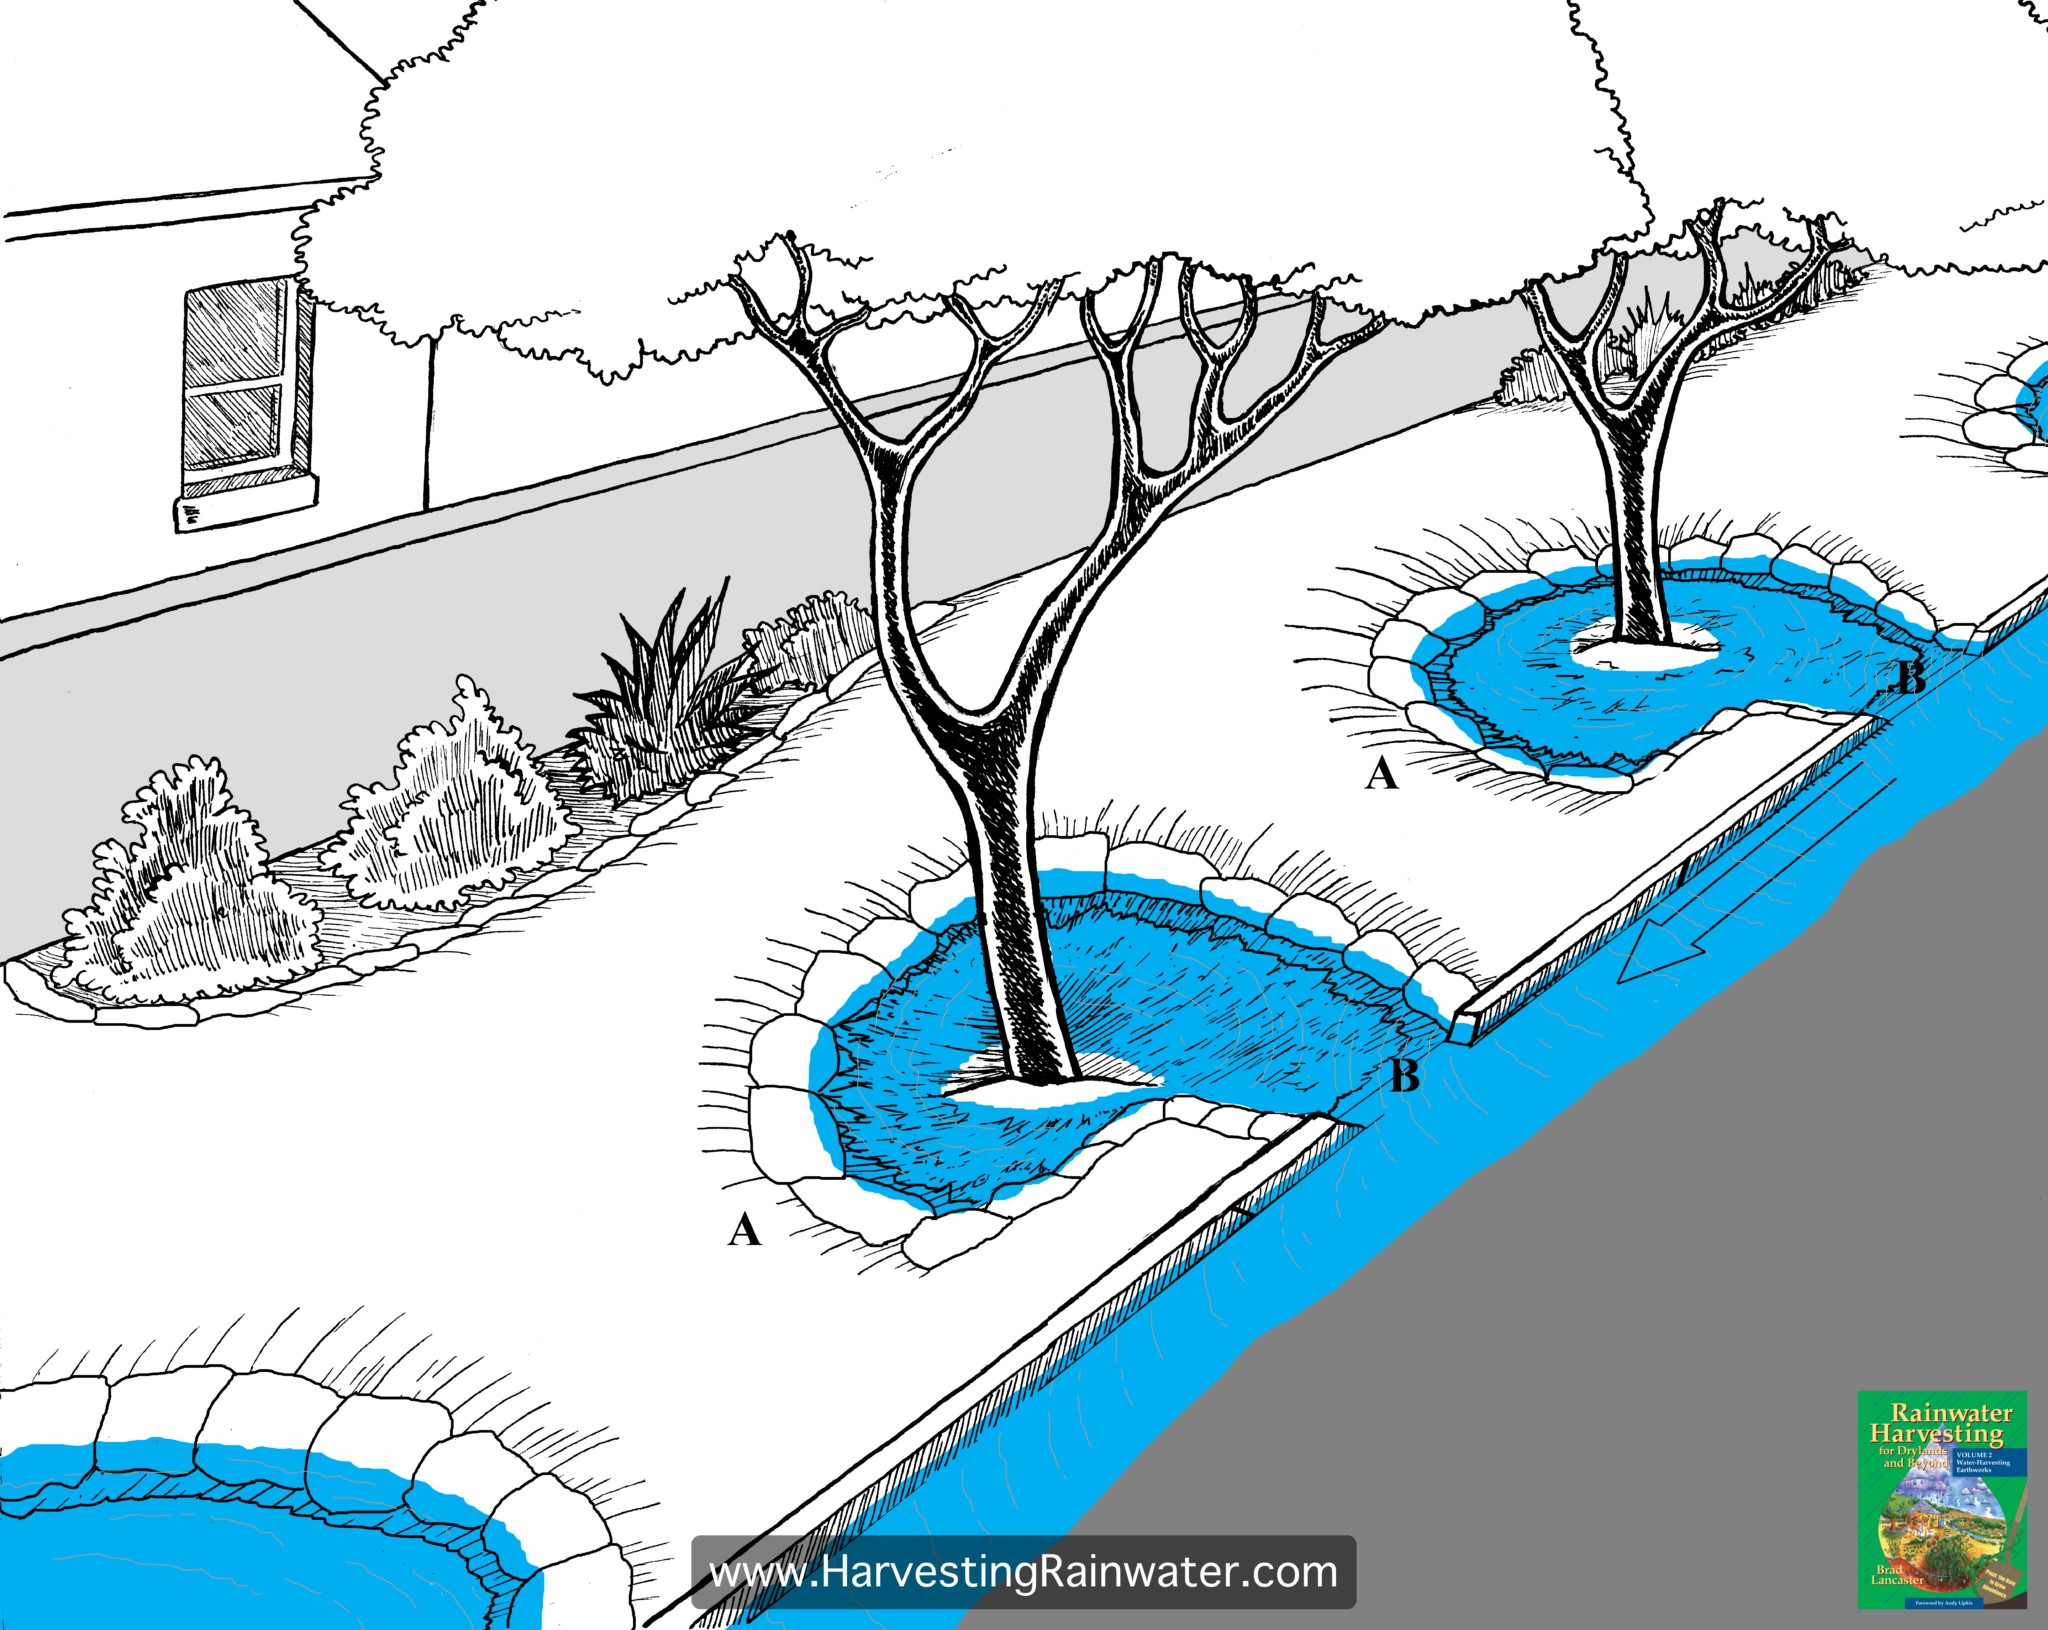 Fig. 1. Eddy or backwater basins. The upper edge of the farthest-downstream section of the basin (A) must be higher (ideally at least 4 inches [10 cm] higher) than the basin's curb-cut, or curb-core, inlet (B) to ensure pooling water calmly backs up to the inlet. Arrow denotes water flow.